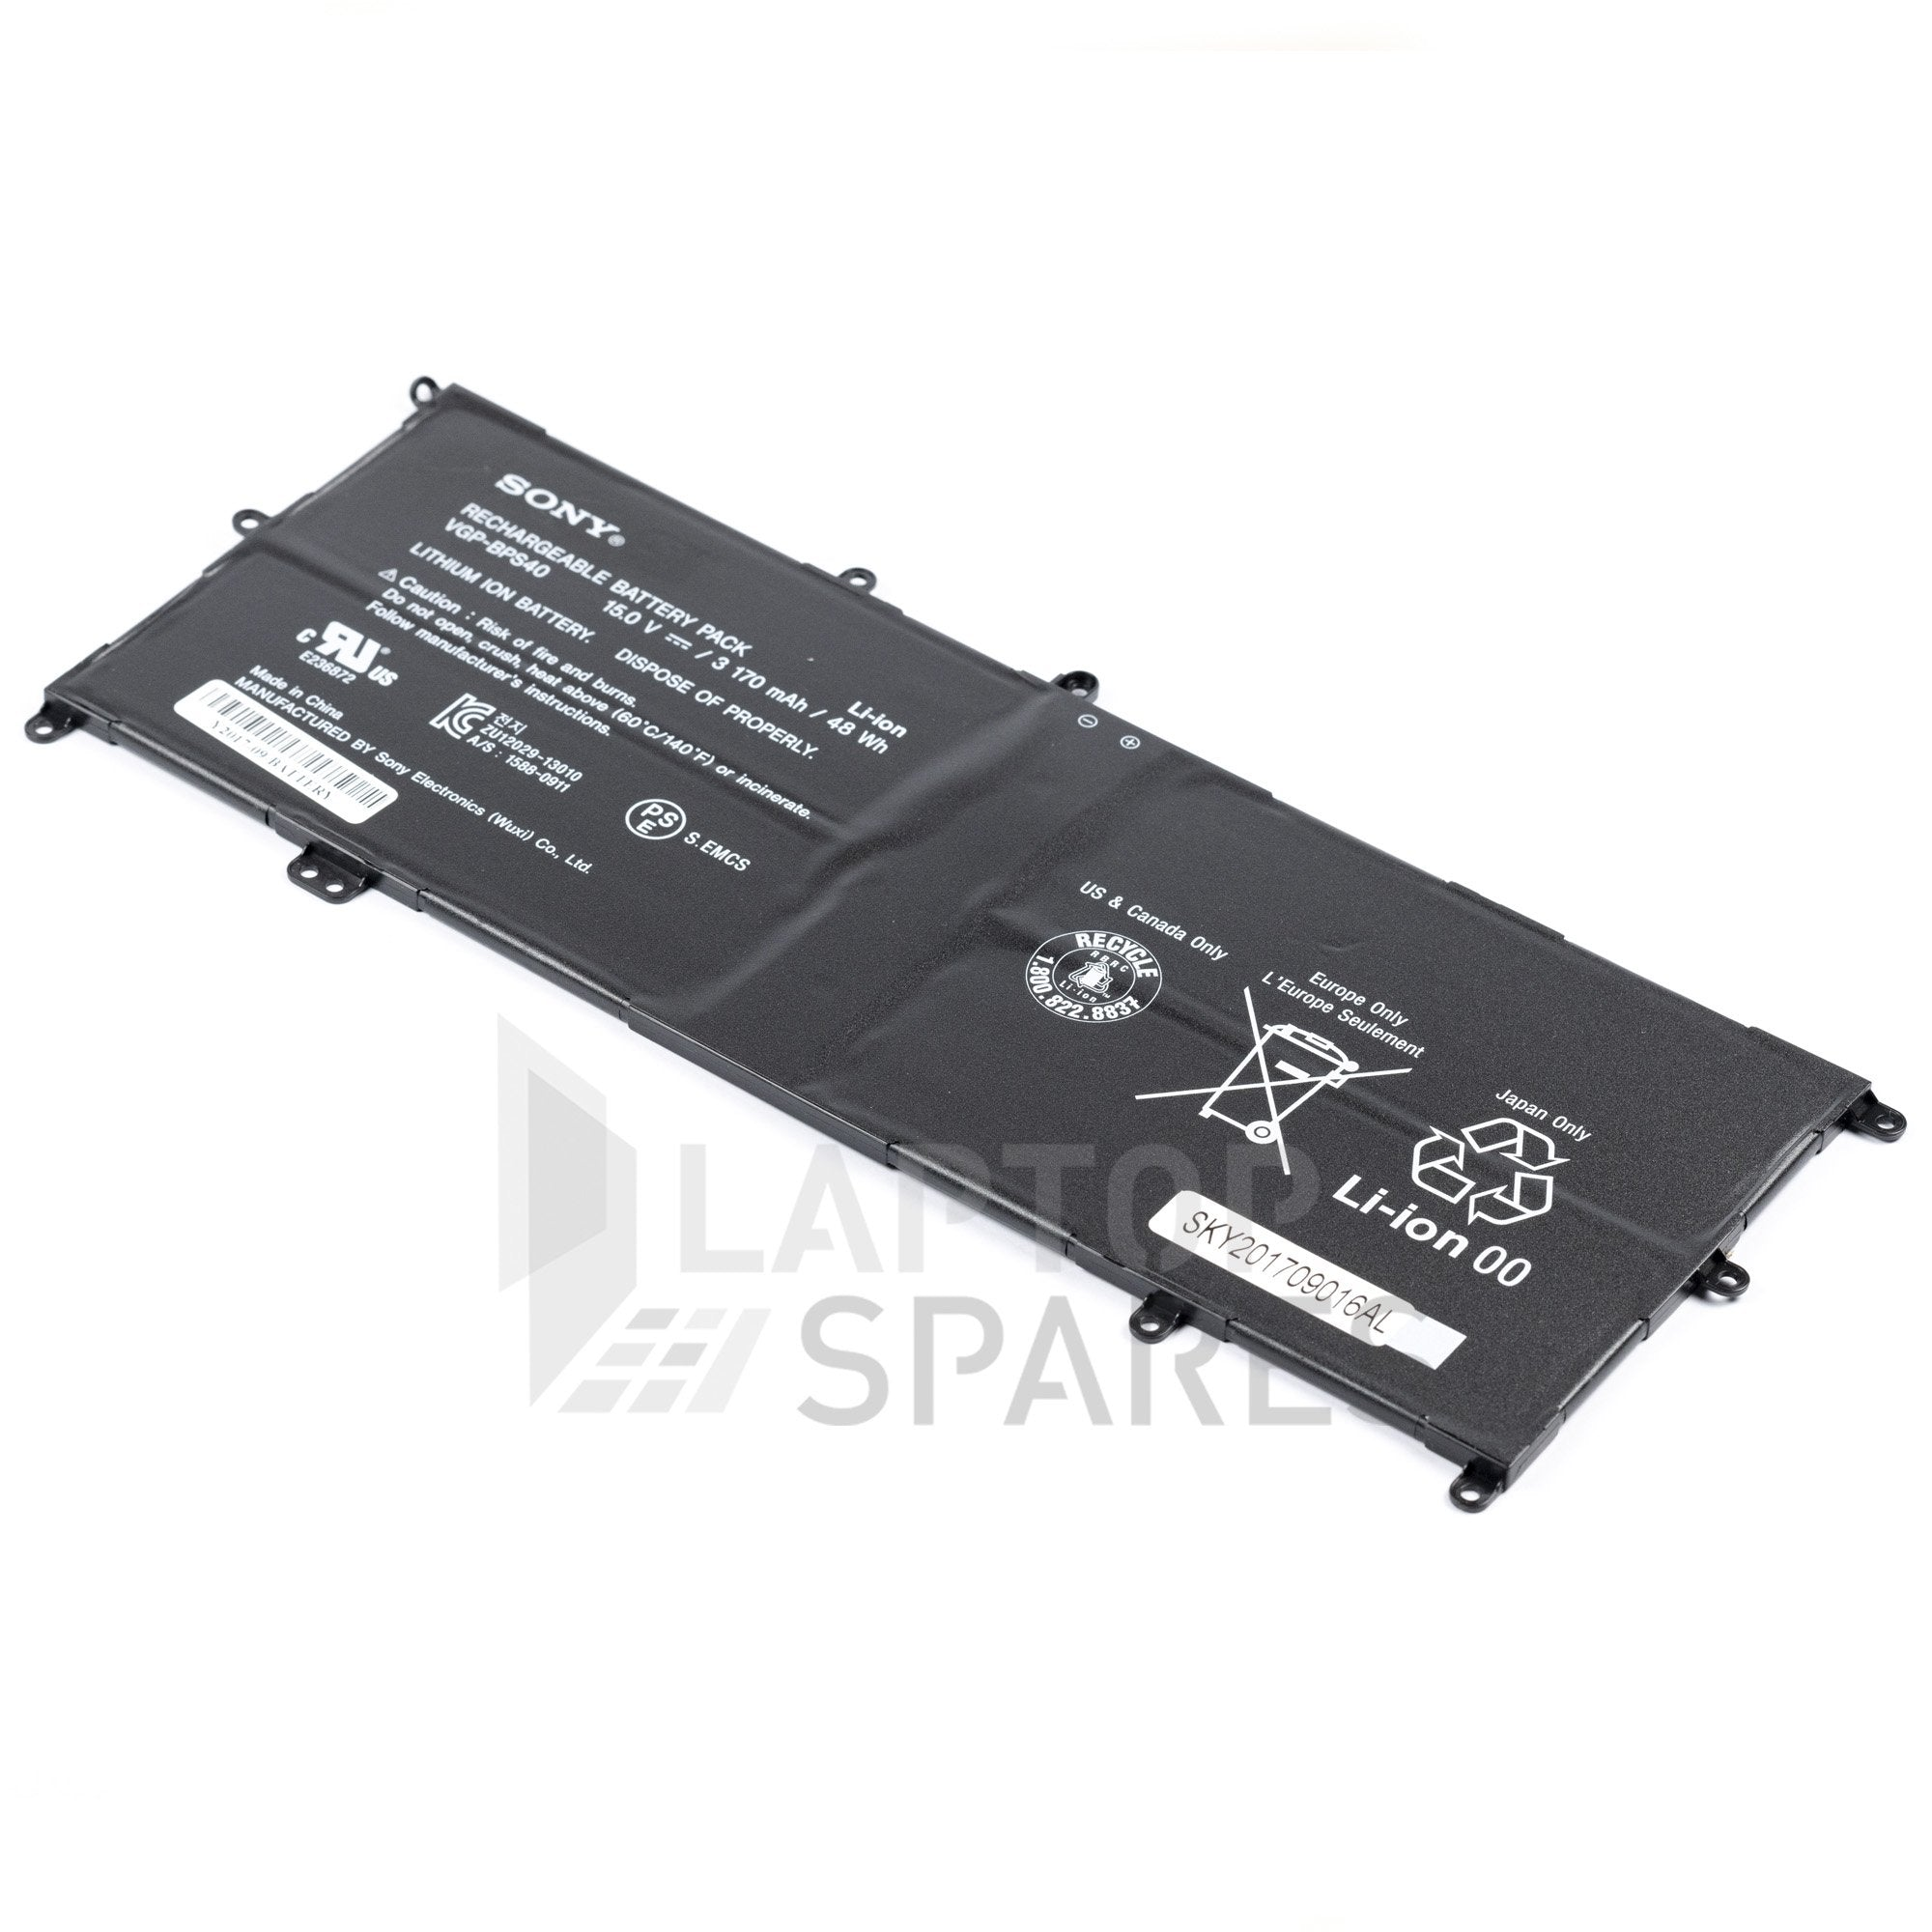 Sony Vaio SVF14N 3170mAh Battery